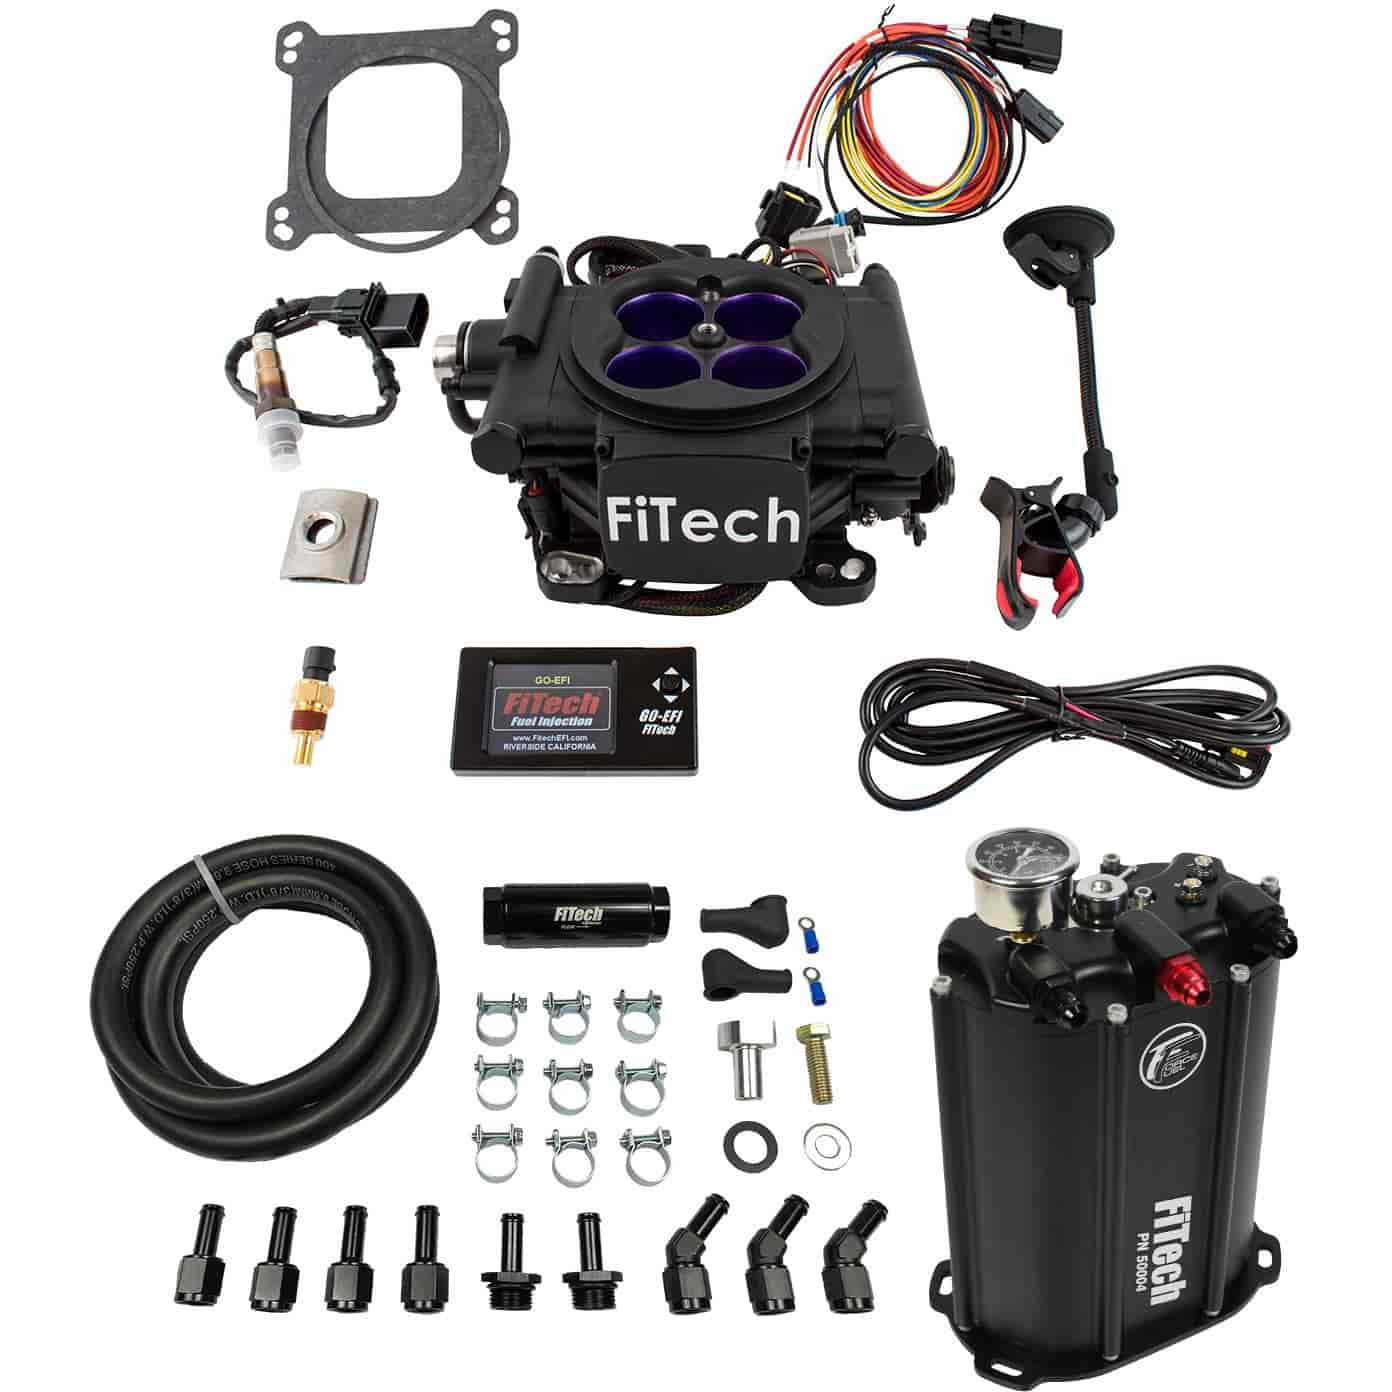 FITech Fuel Injection 35208